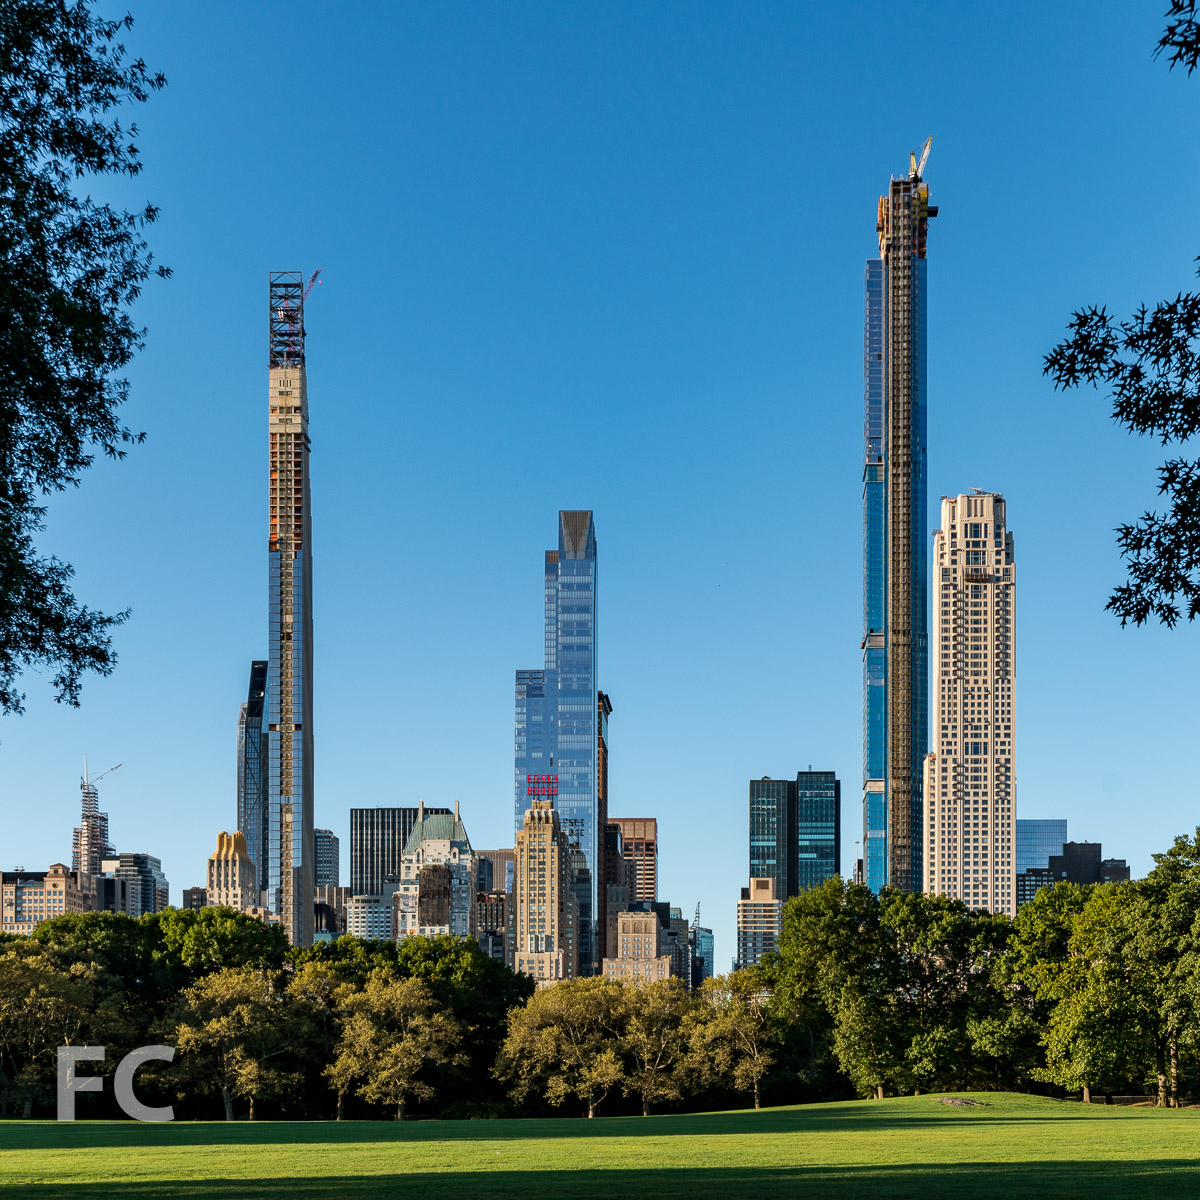 Billionaire's Row skyline from the Sheep Meadow in Central Park.